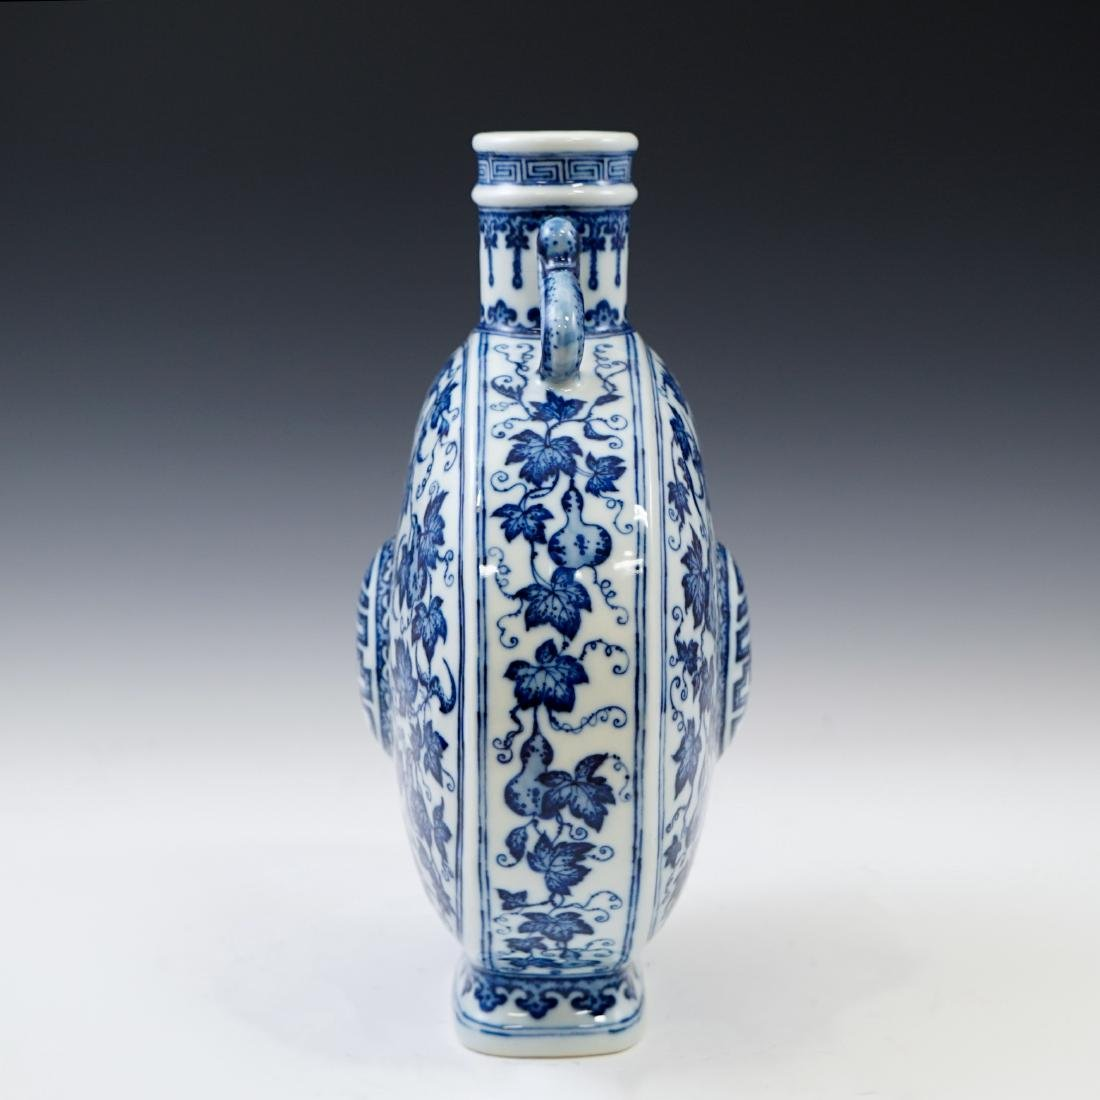 VERY FINE QIANLONG BLUE AND WHITE PORCELAIN MOON FLASK - 4